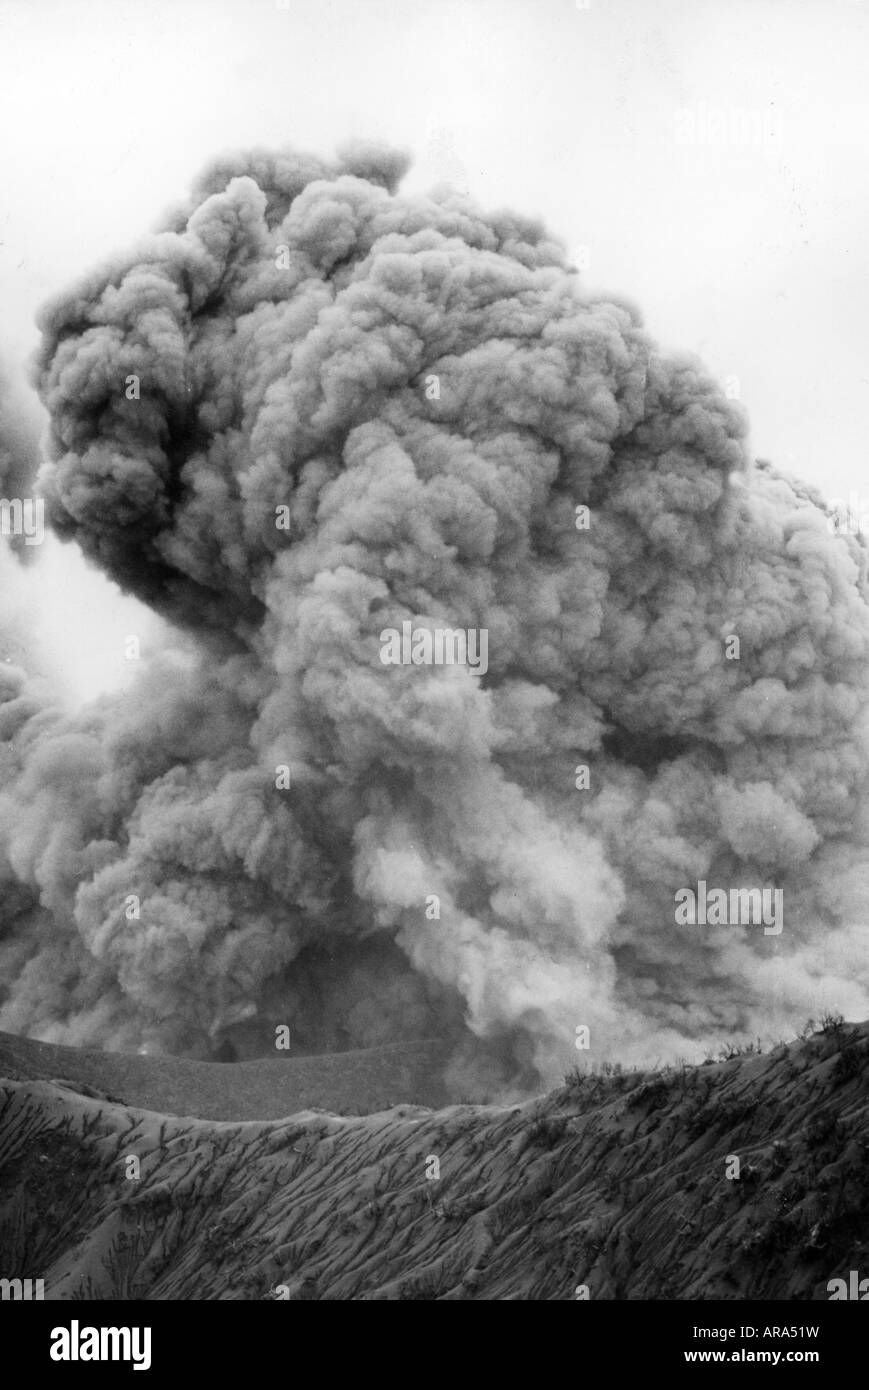 geography / travel, Costa Rica, natural disaster / catastrophe, volcanic eruption of Irazu volcano, crater, 1963, - Stock Image